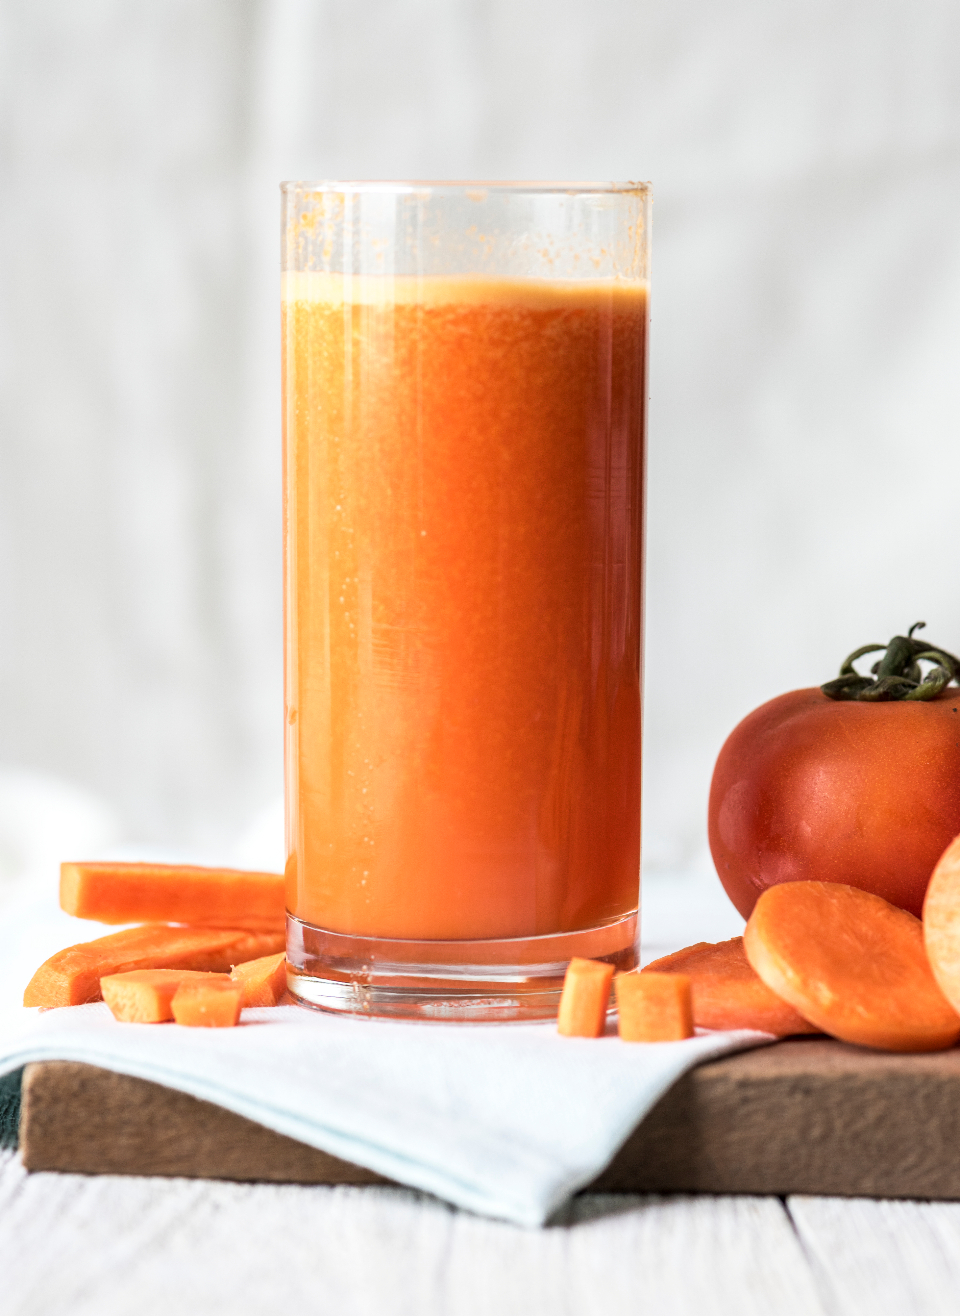 carrot juice closeup drink drinkable energy food photography fresh freshly squeezed freshness glass gourmet health healthy ingredient juice macro mocktail natural nutrition orange organic piece raw refreshi